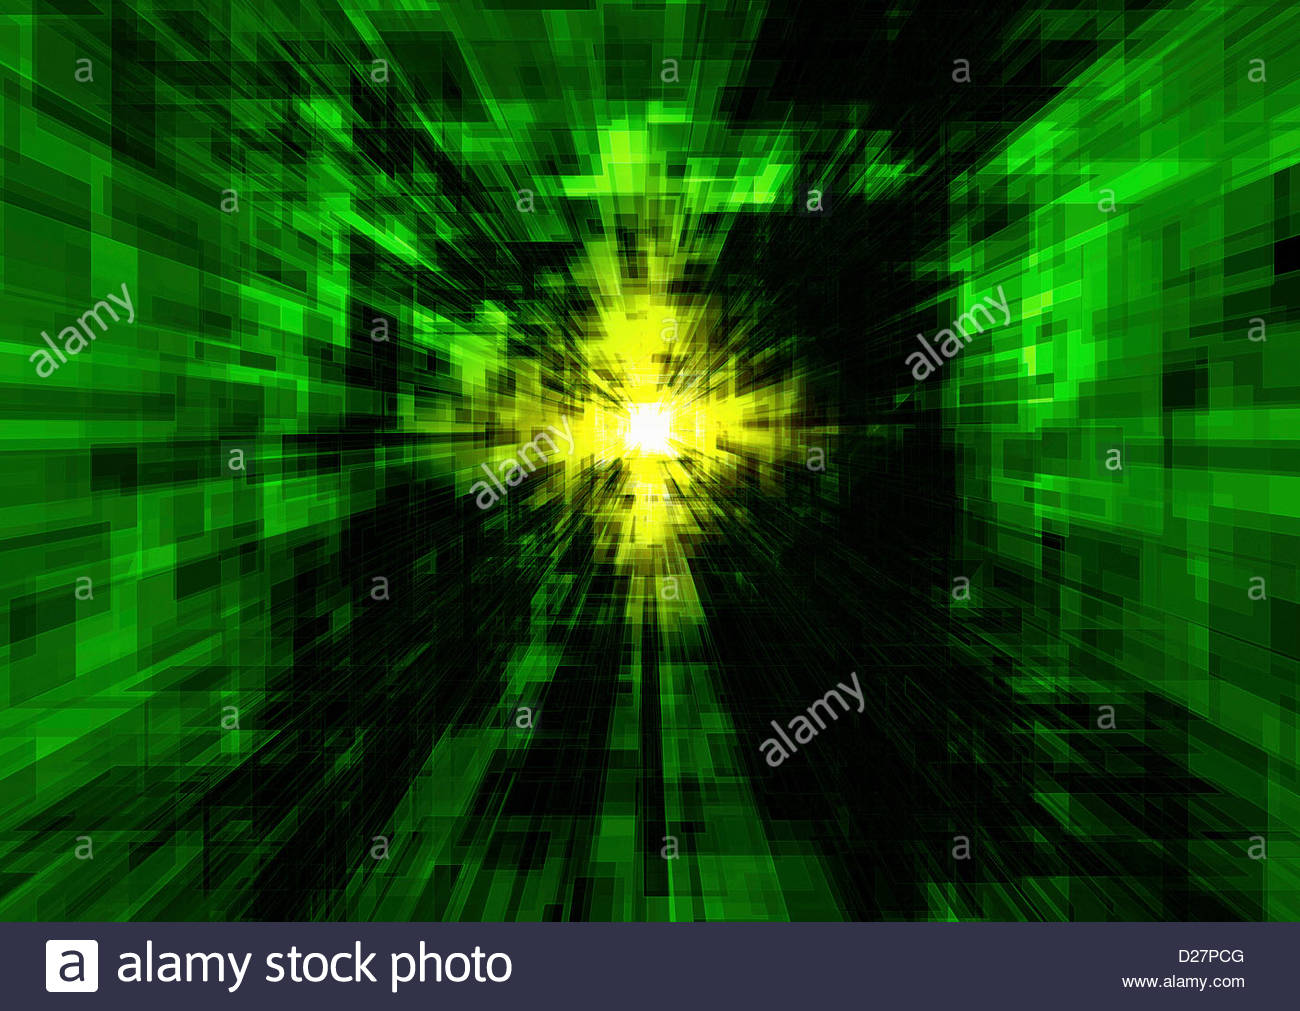 Vanishing point at center of abstract green geometric pattern - Stock Image